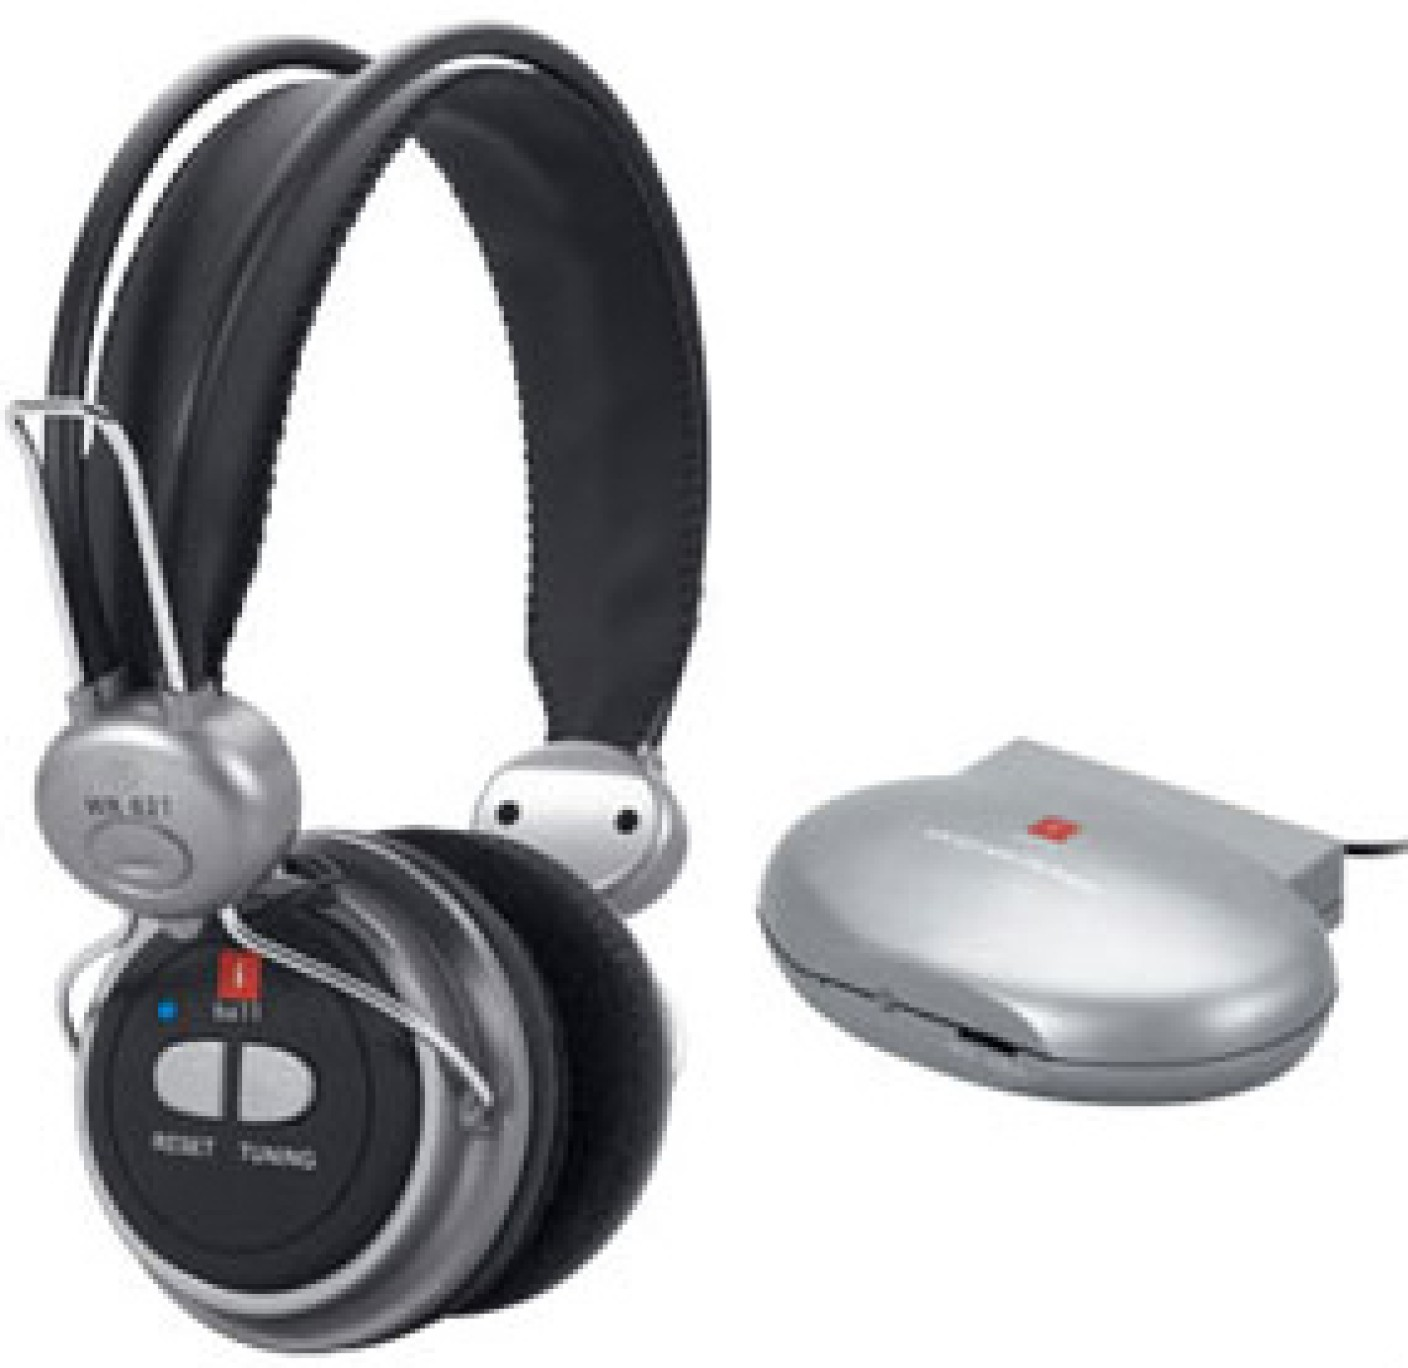 Iball wr 621 headphone price in india buy iball wr 621 for Decor 9 iball